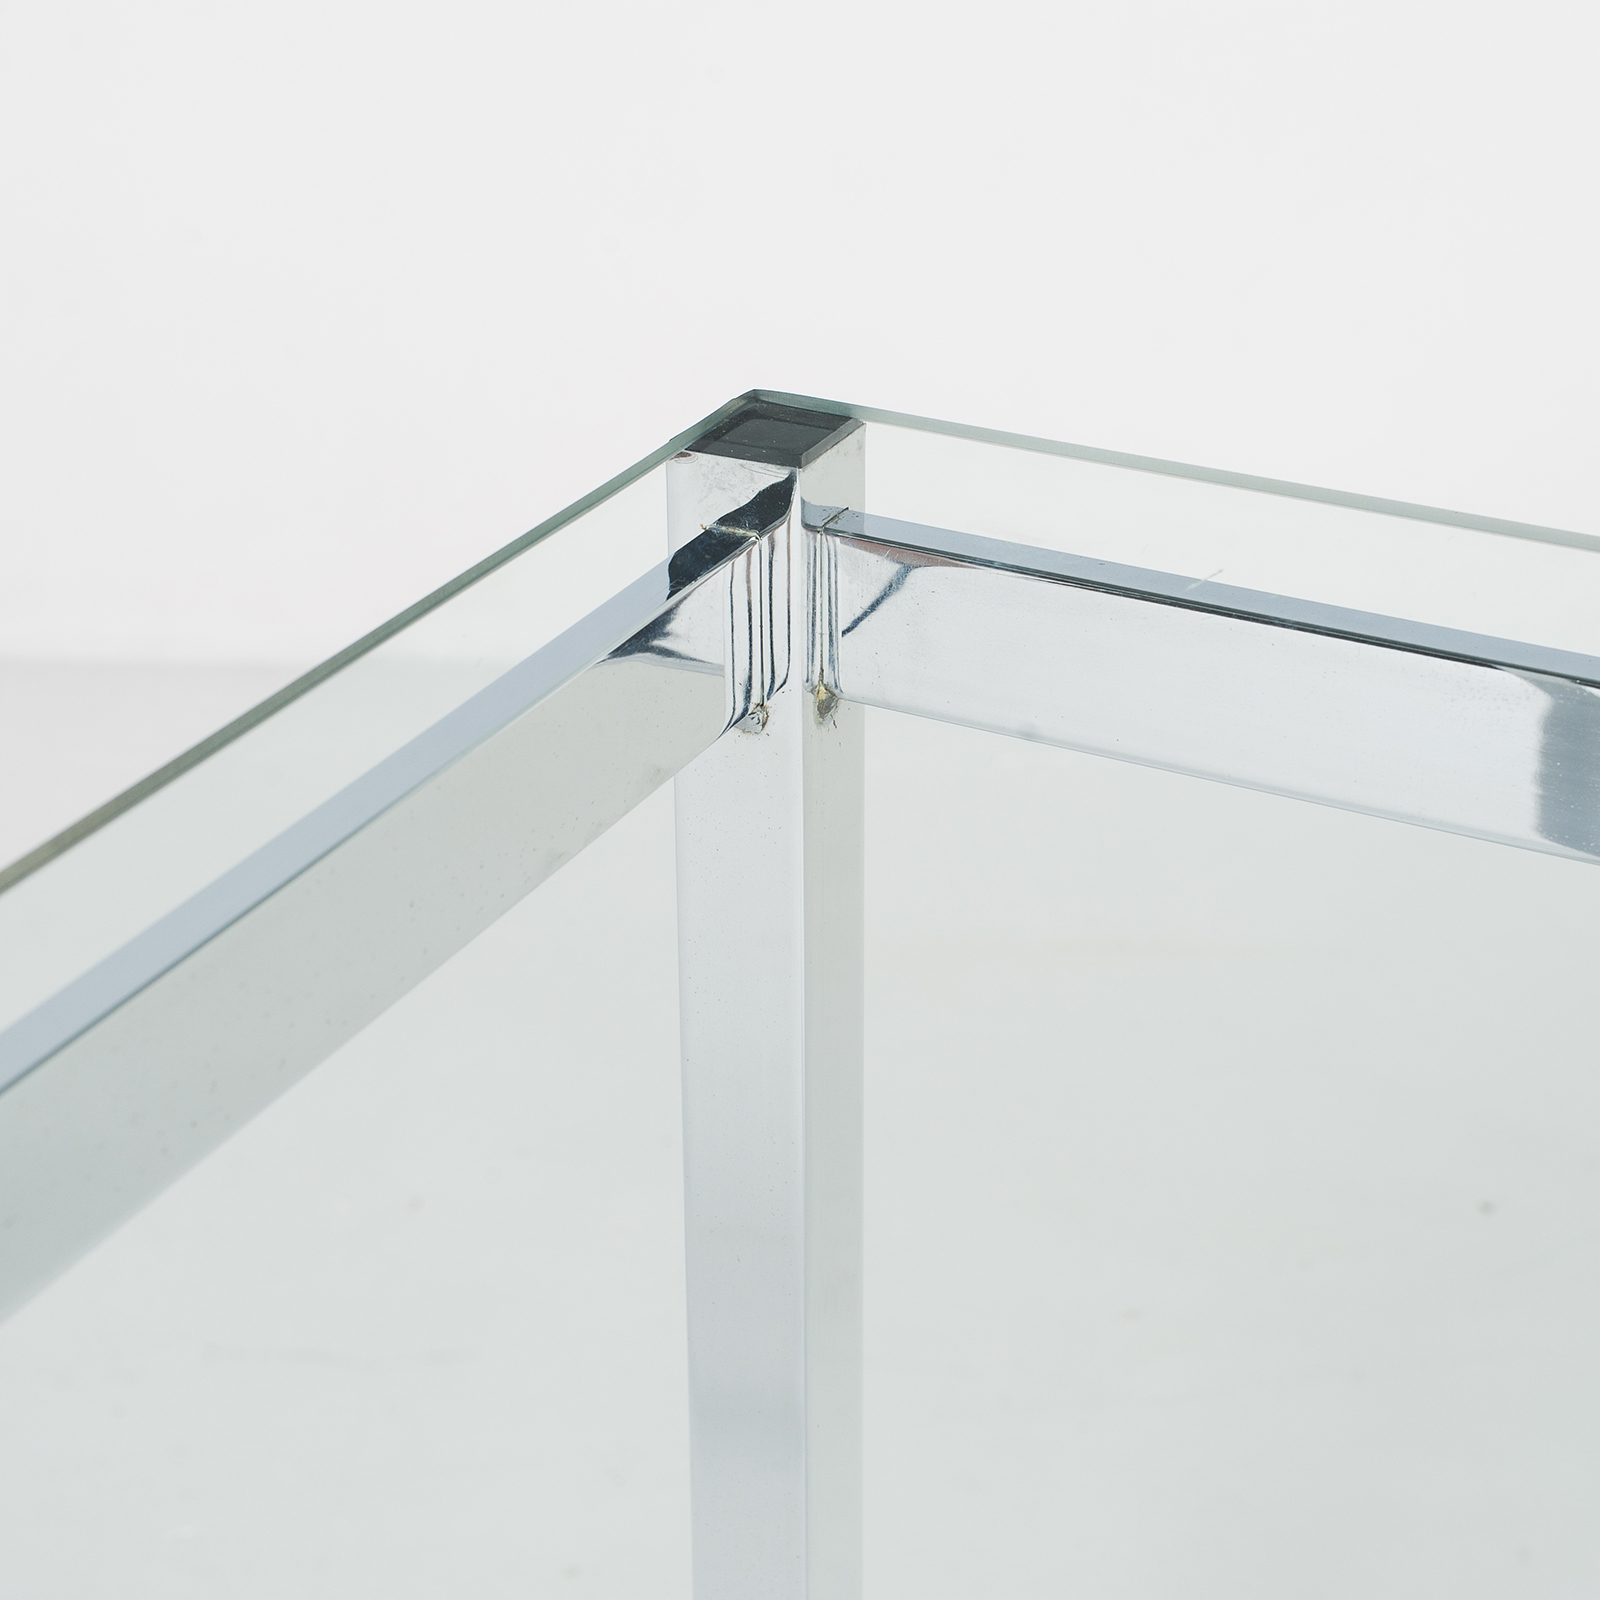 Dining Table In Glass And Chrome, 1970s, The Netherlands795